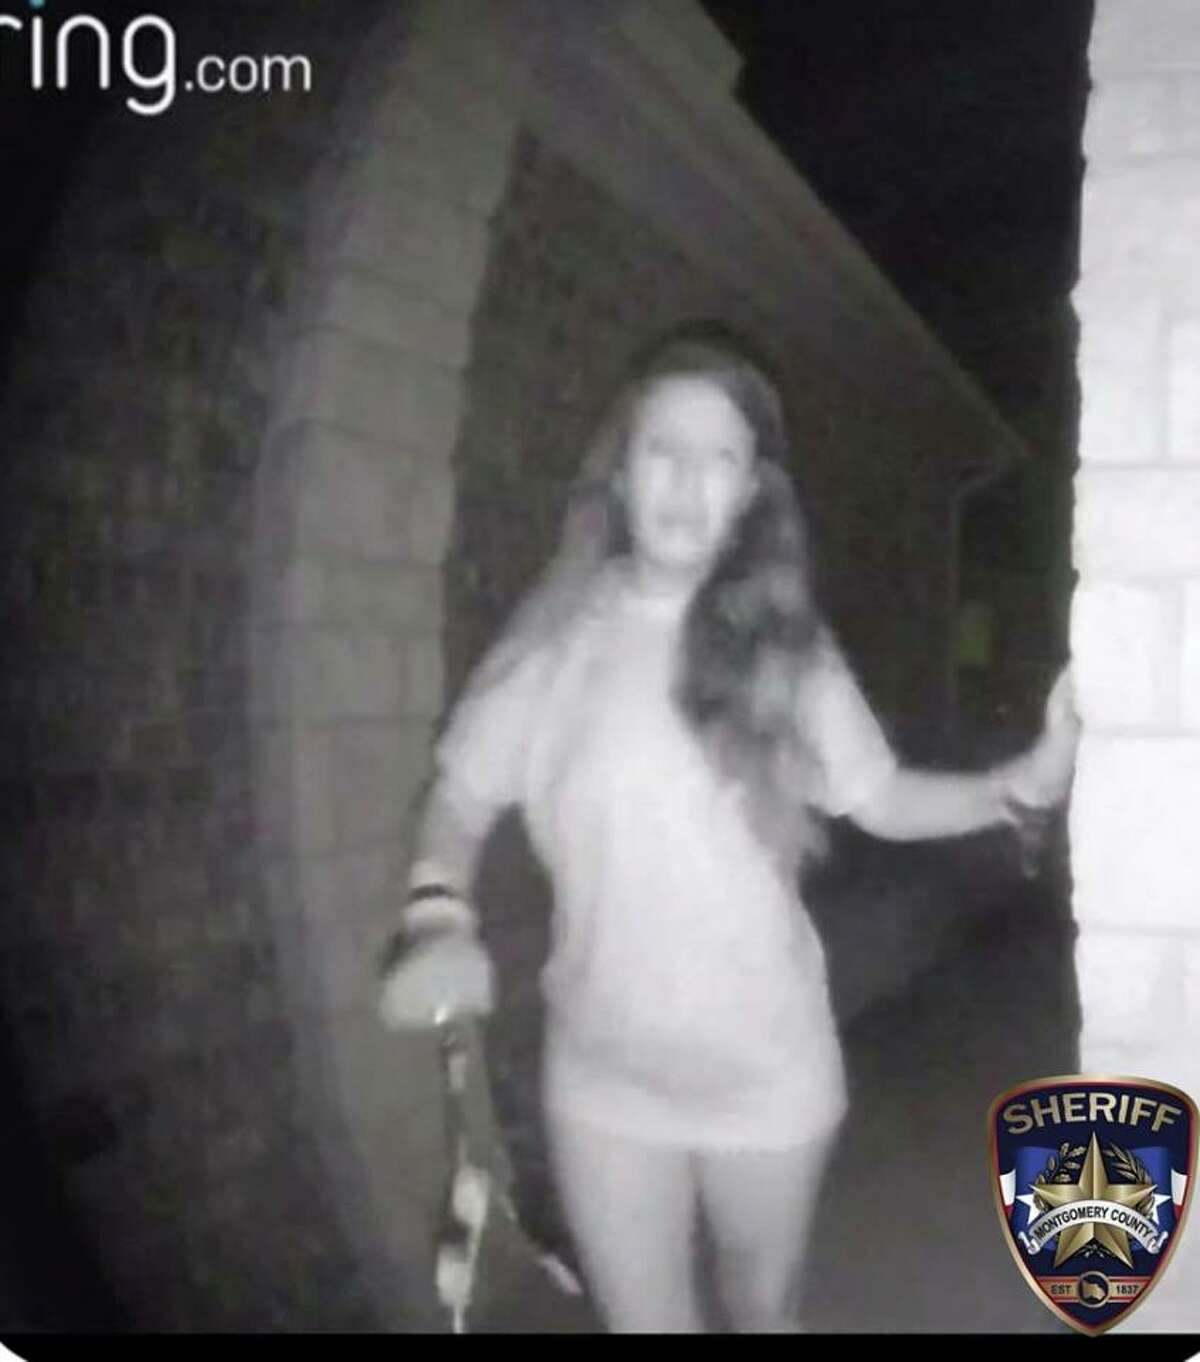 Authorities are seeking the identity of a woman who rang a doorbell early Friday morning in Montgomery County. PHOTOS: Missing in Houston Authorities are looking for these individuals who haven't been heard from for a while. >>Do you know these 22 missing people who were last seen in Houston?